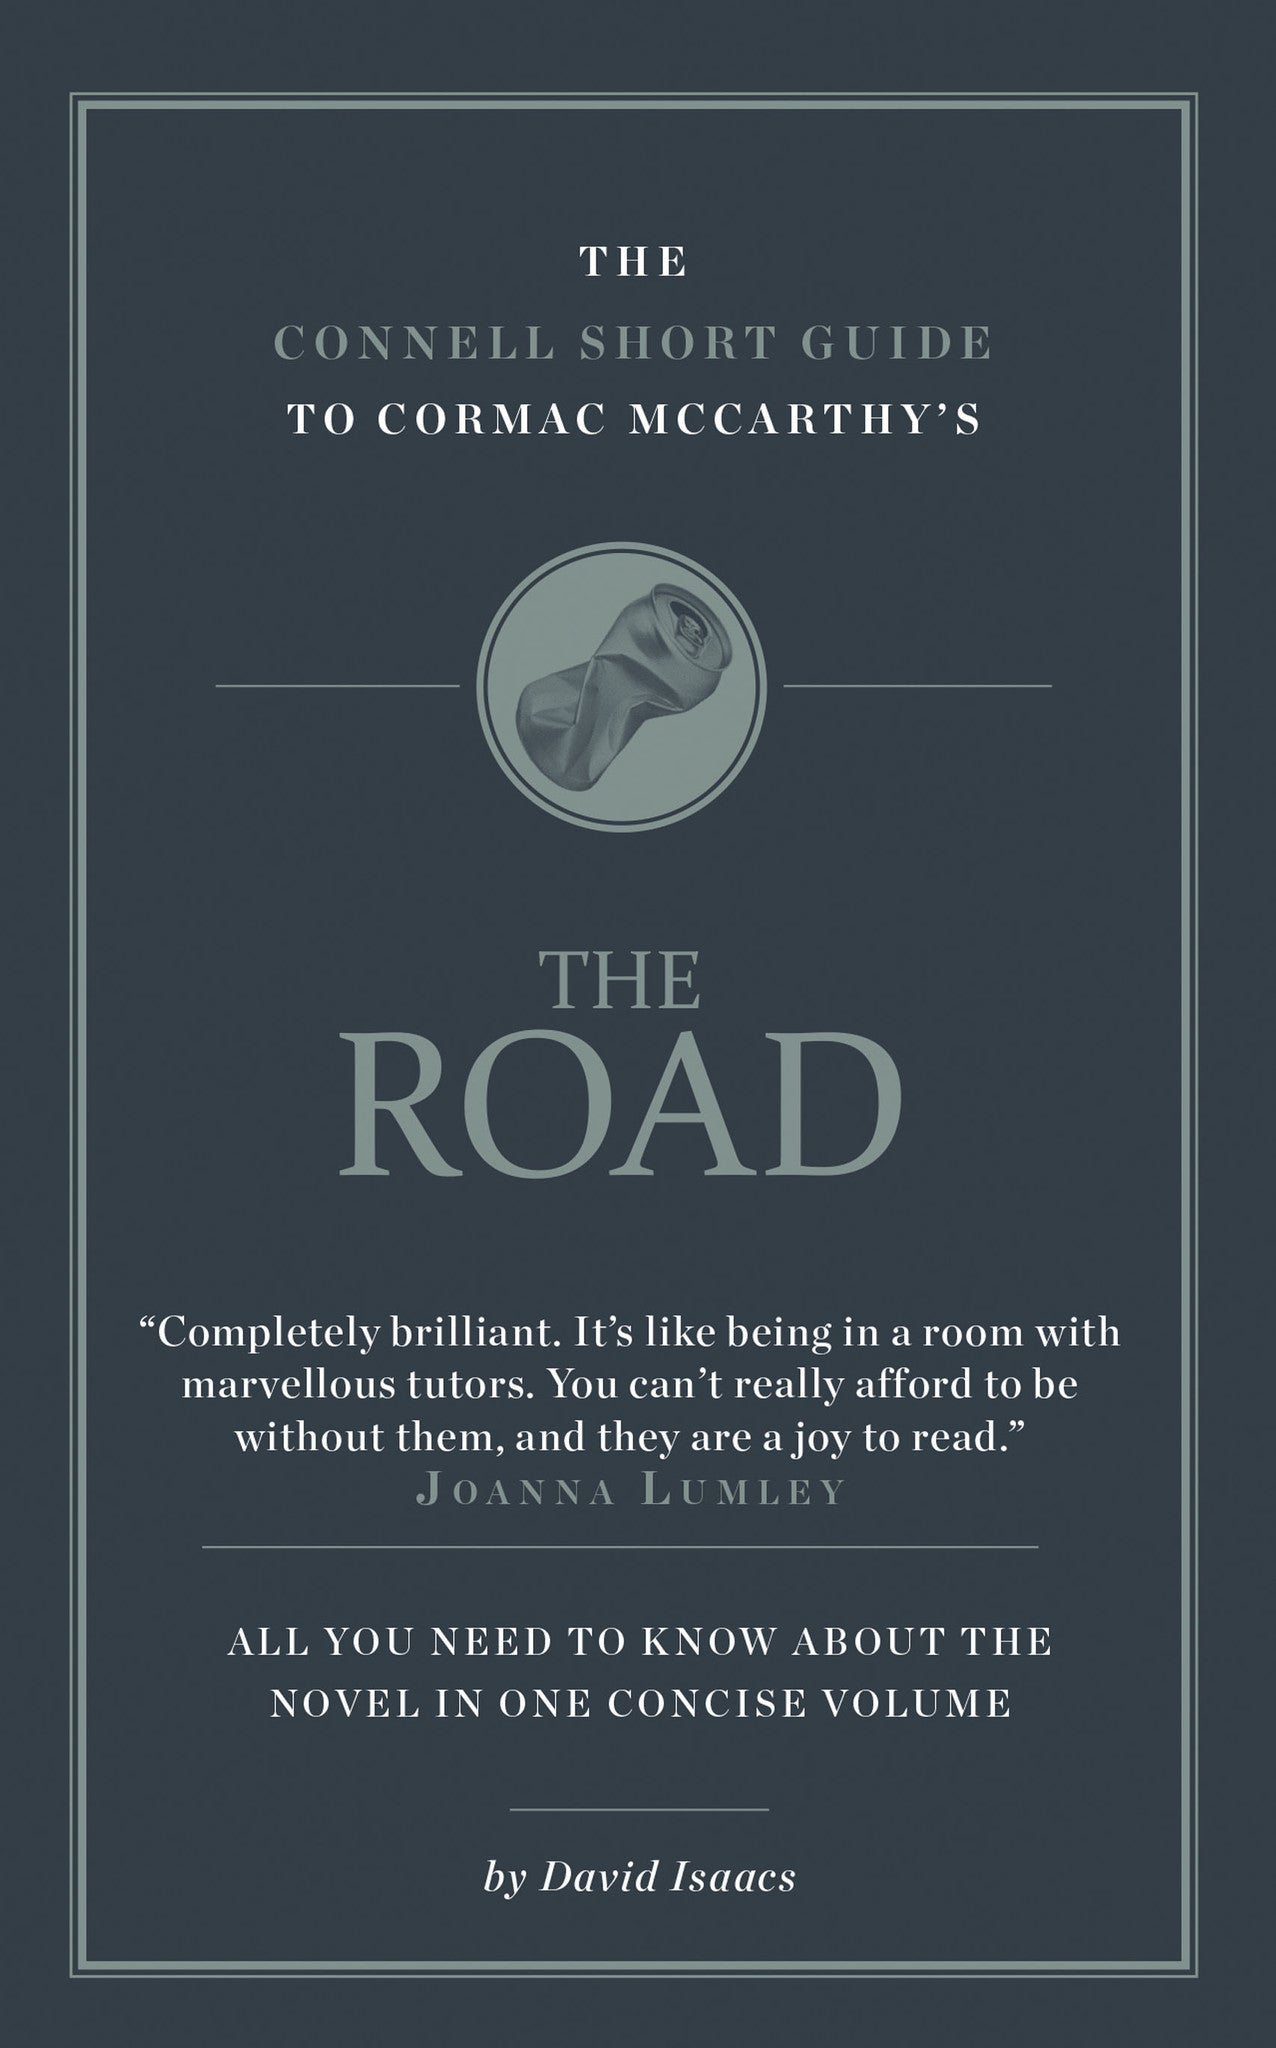 cormac mccarthy s the road short study guide connell guides cormac mccarthy s the road short study guide